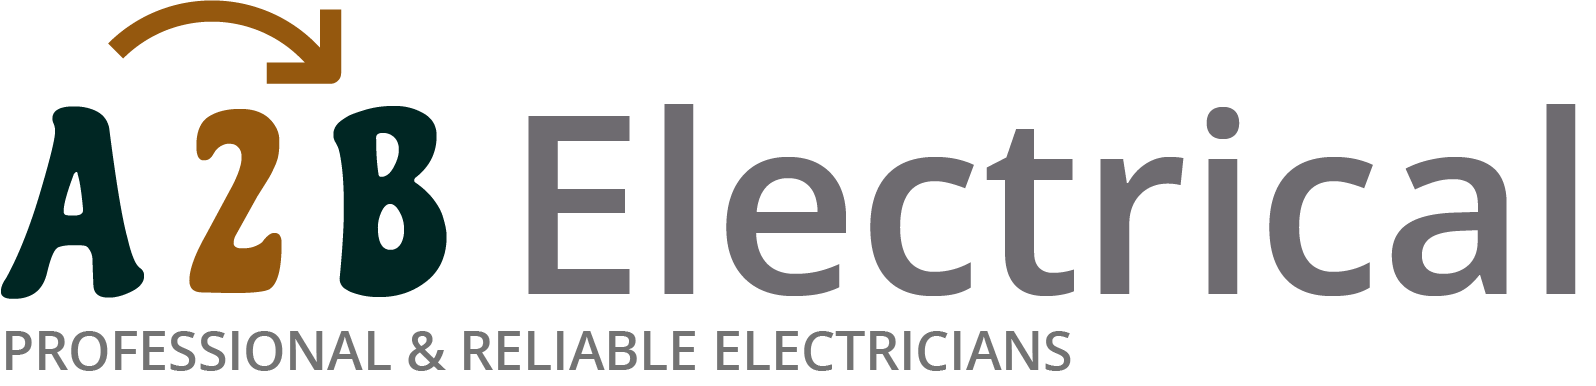 If you have electrical wiring problems in Balham, we can provide an electrician to have a look for you.